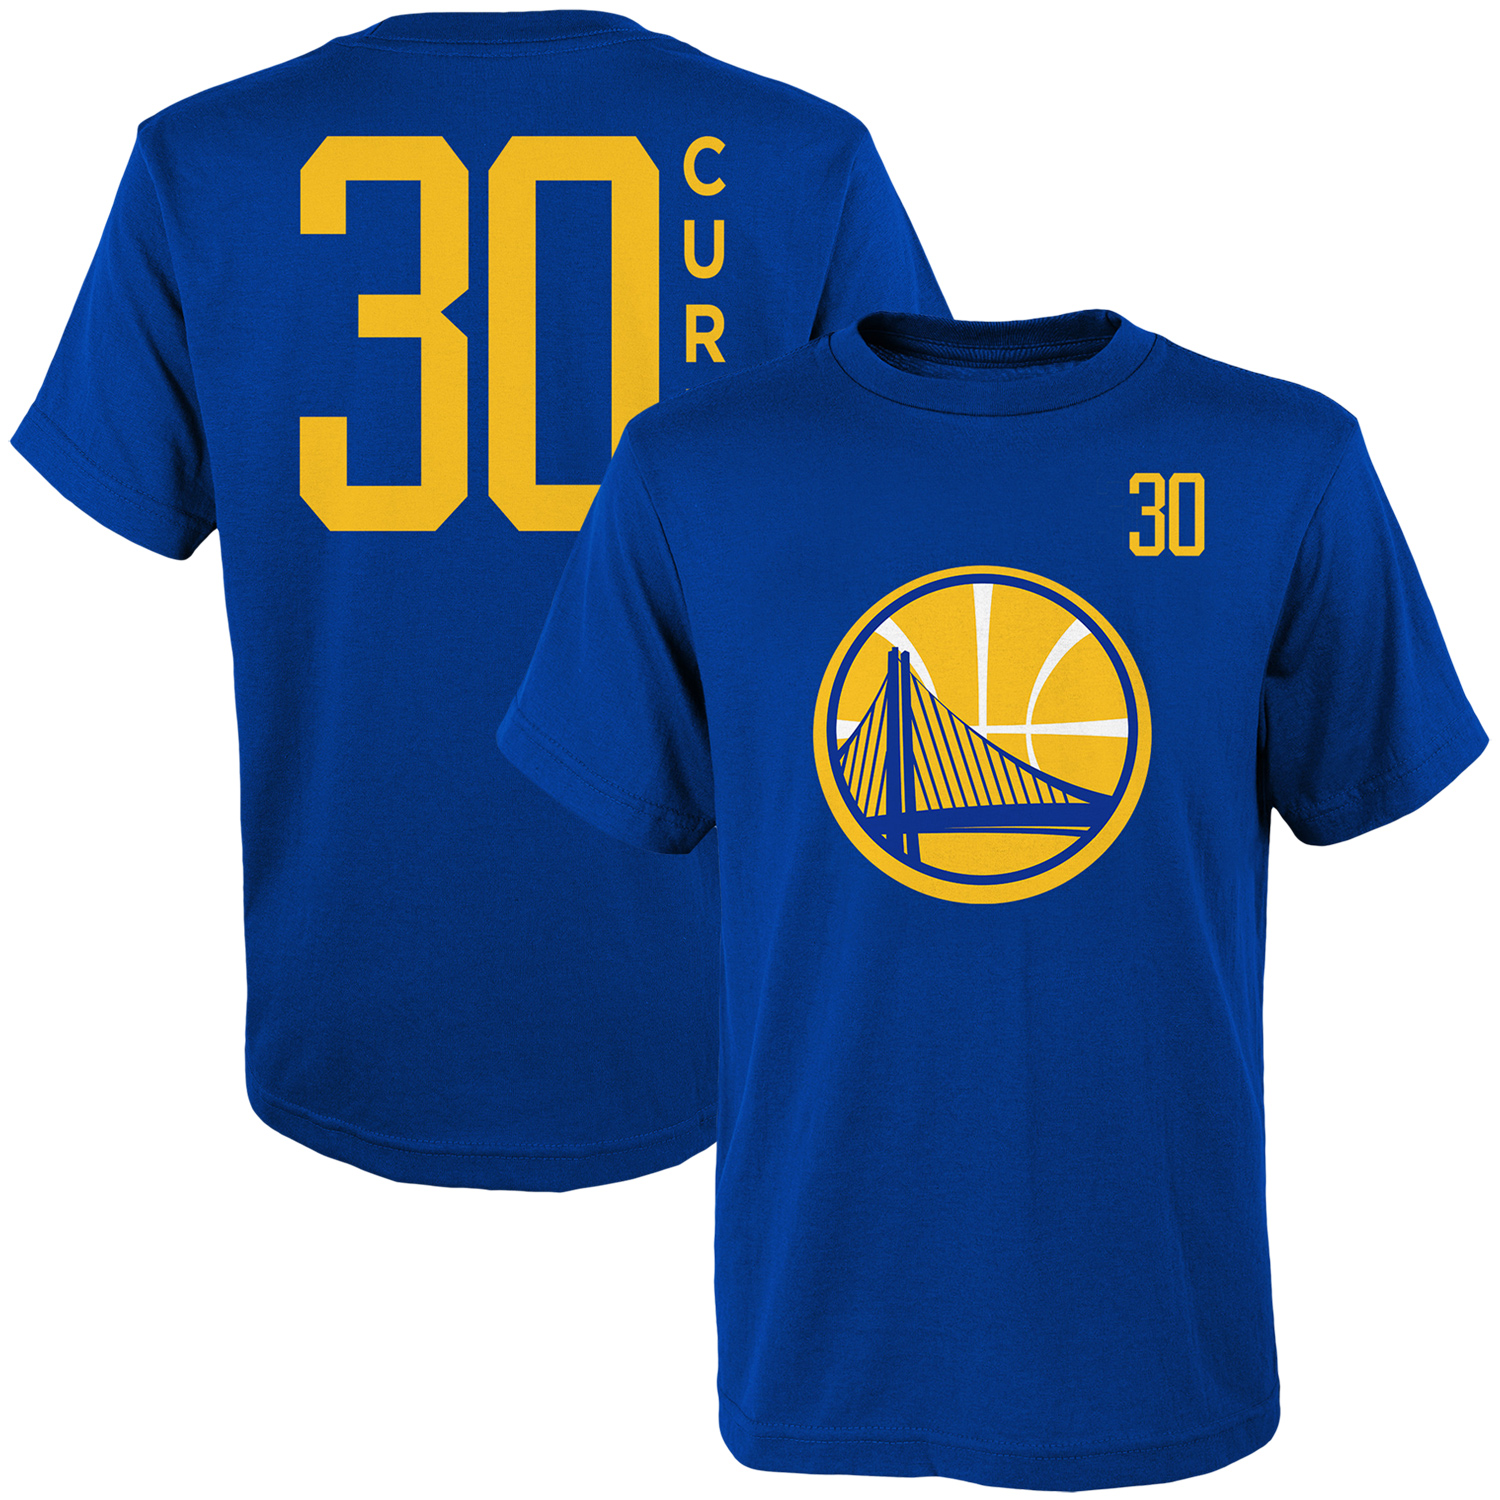 Youth Stephen Curry Royal Golden State Warriors Name & Number T-Shirt